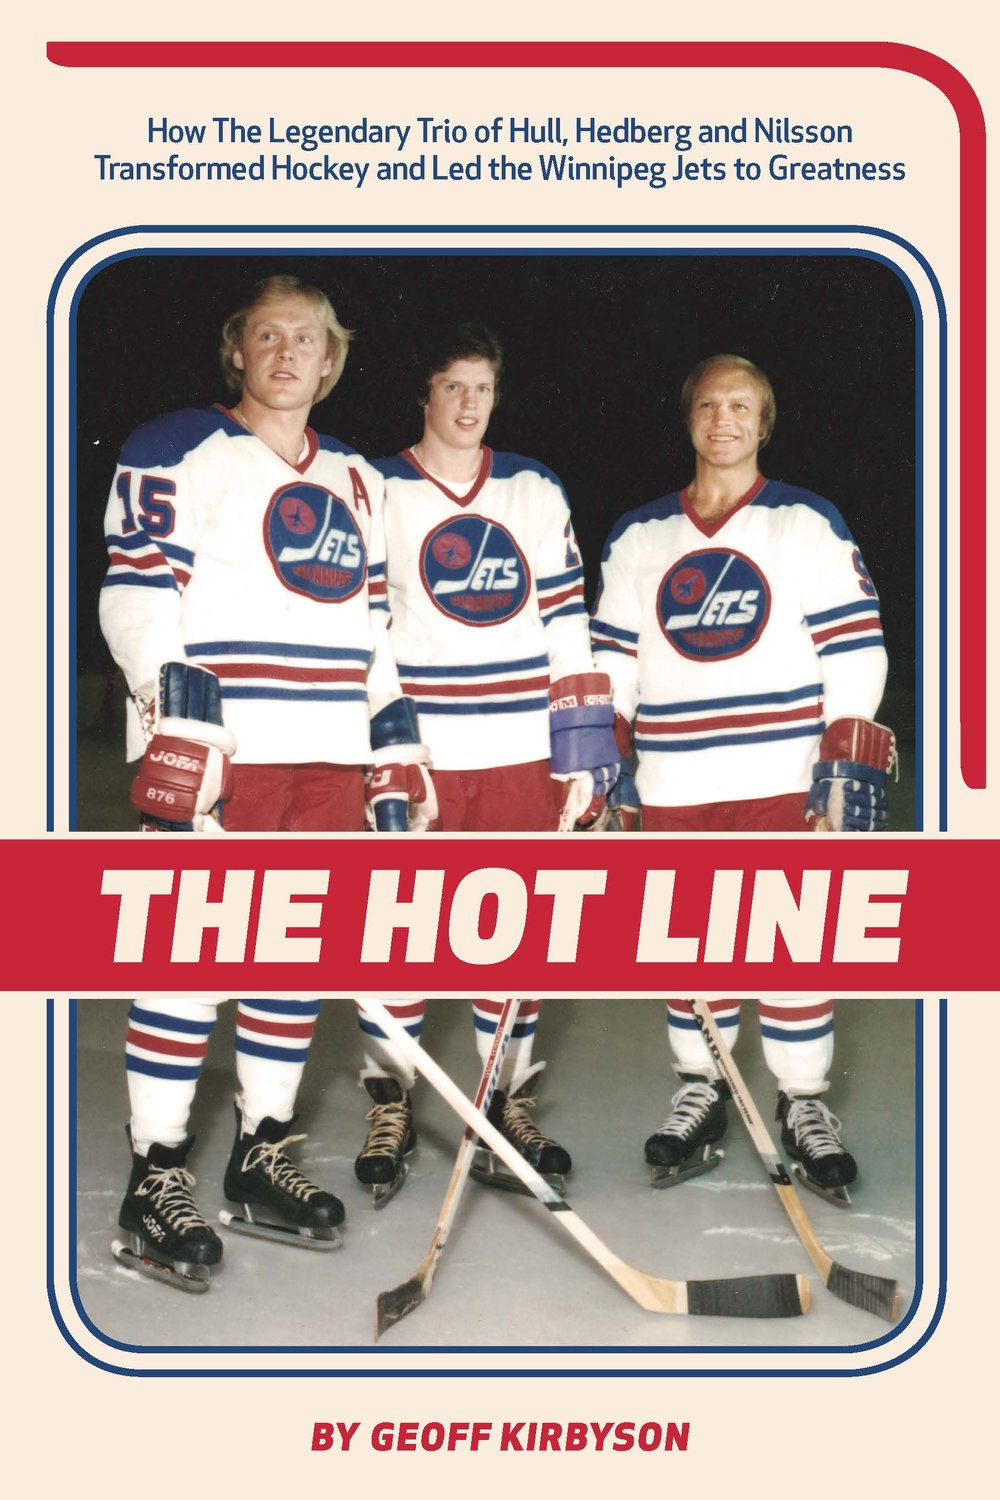 The Hot Line by Geoff Kirbyson